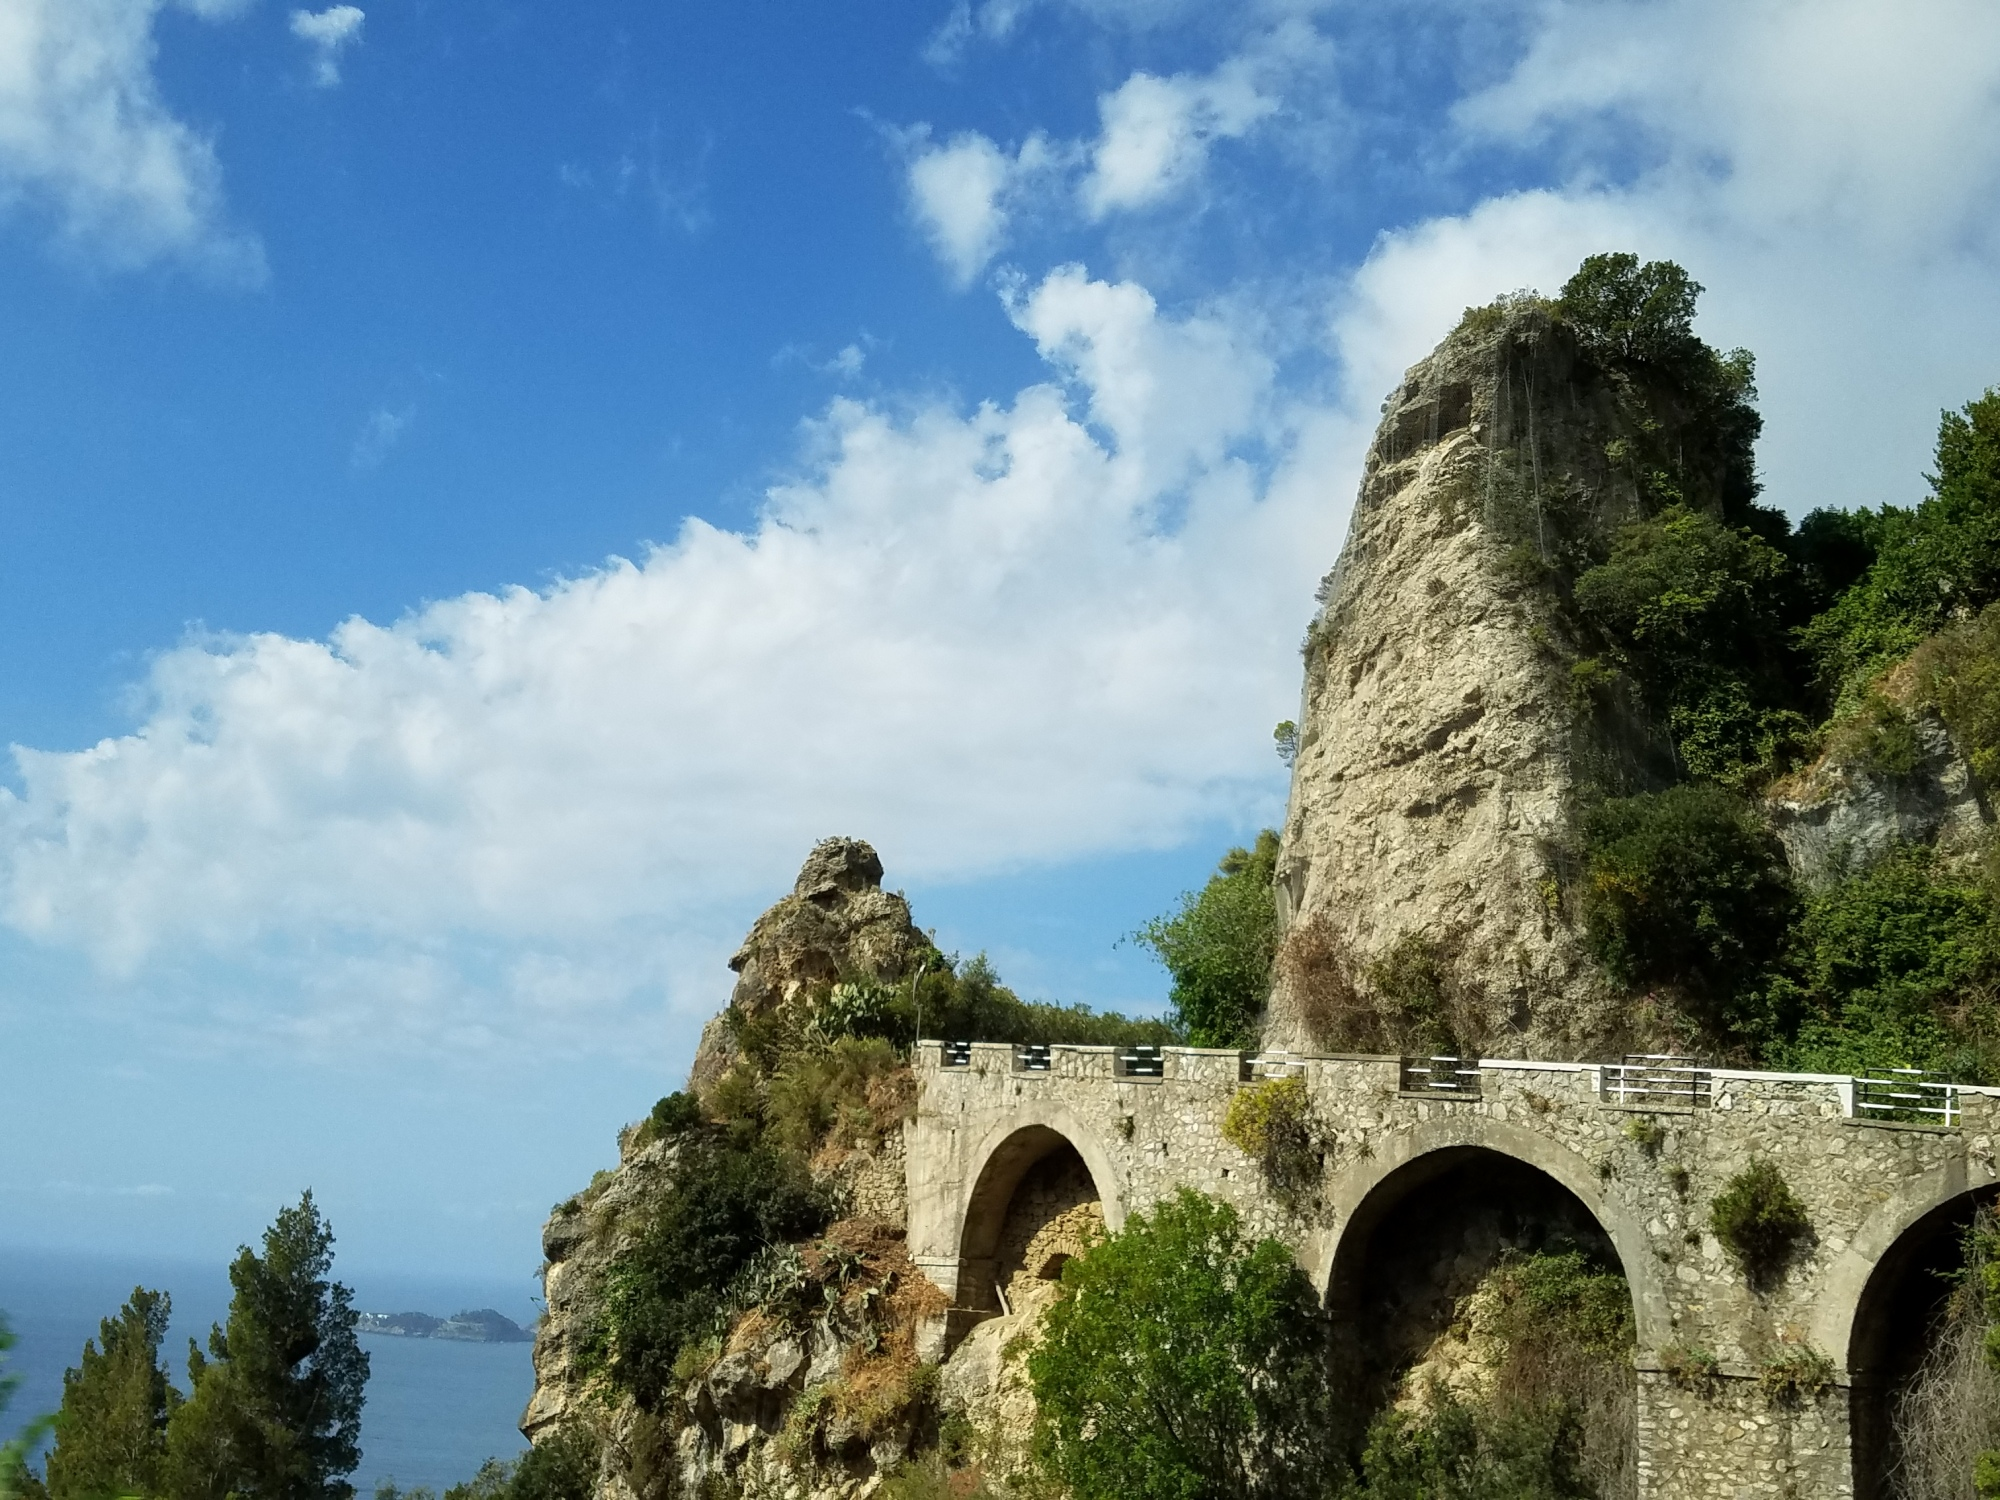 Italy Travel Tip | Hire a Private Guide to Tour the Amalfi Coast